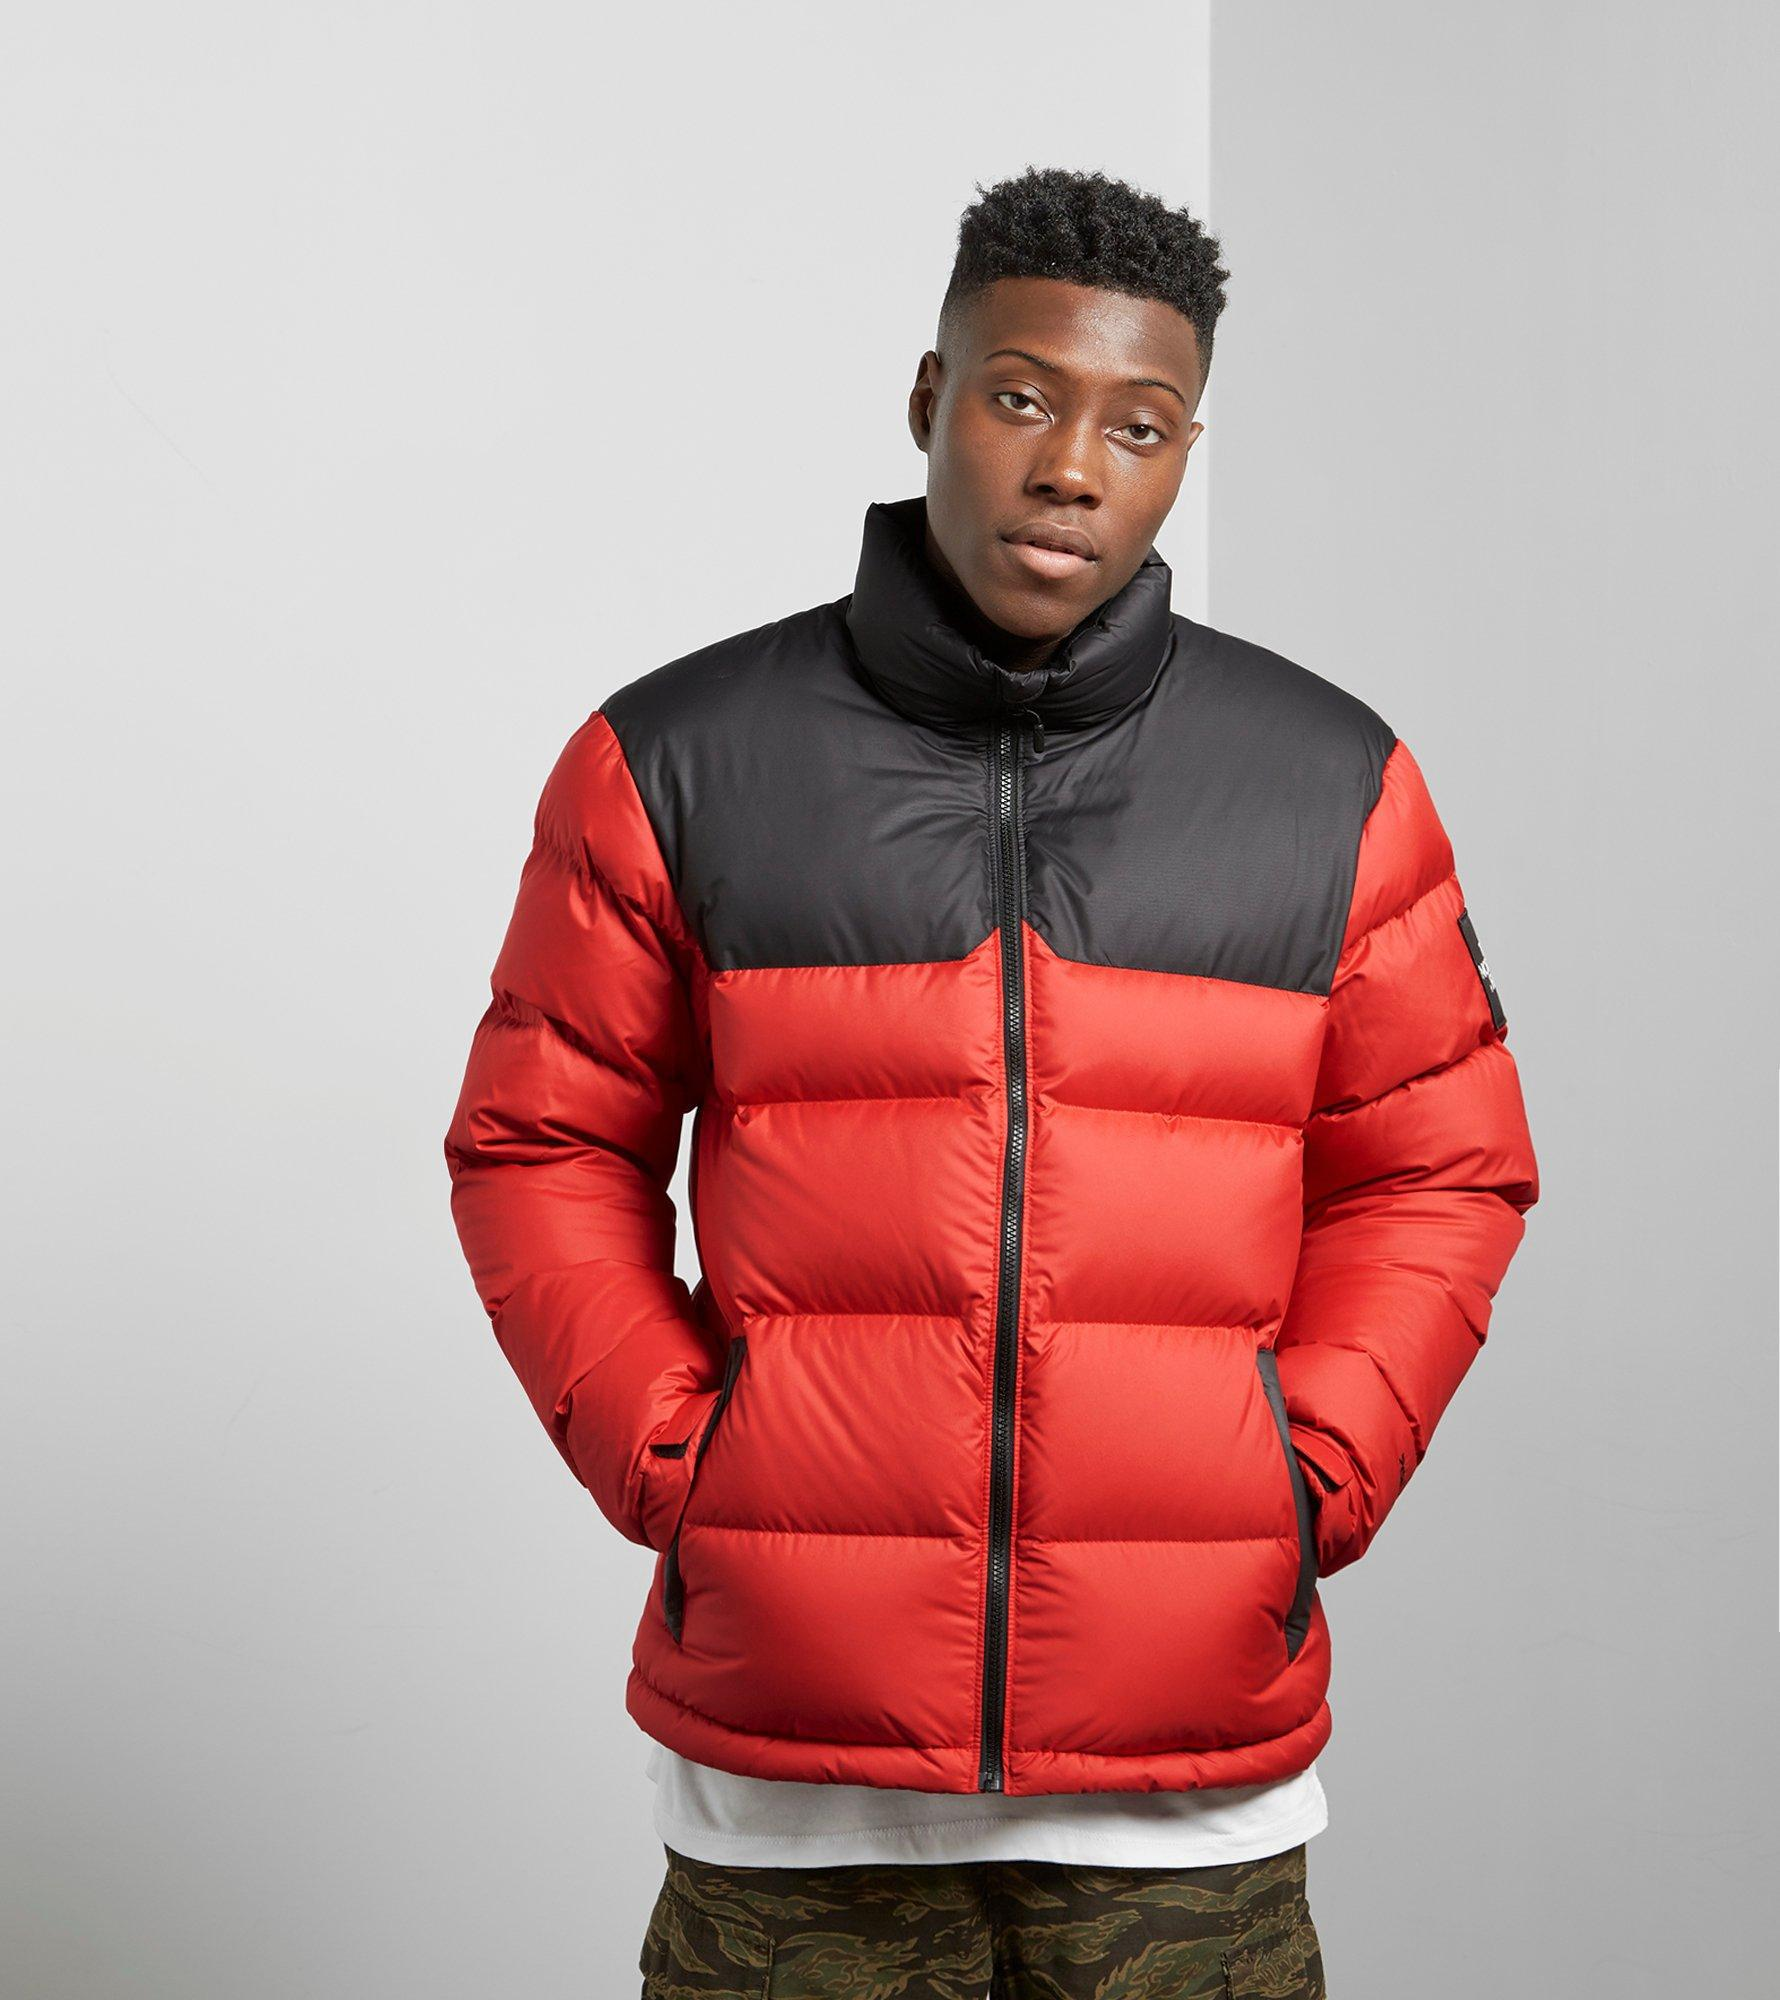 af2615d686 ... discount lyst the north face 1992 nuptse jacket in red for men 49f5c  20556